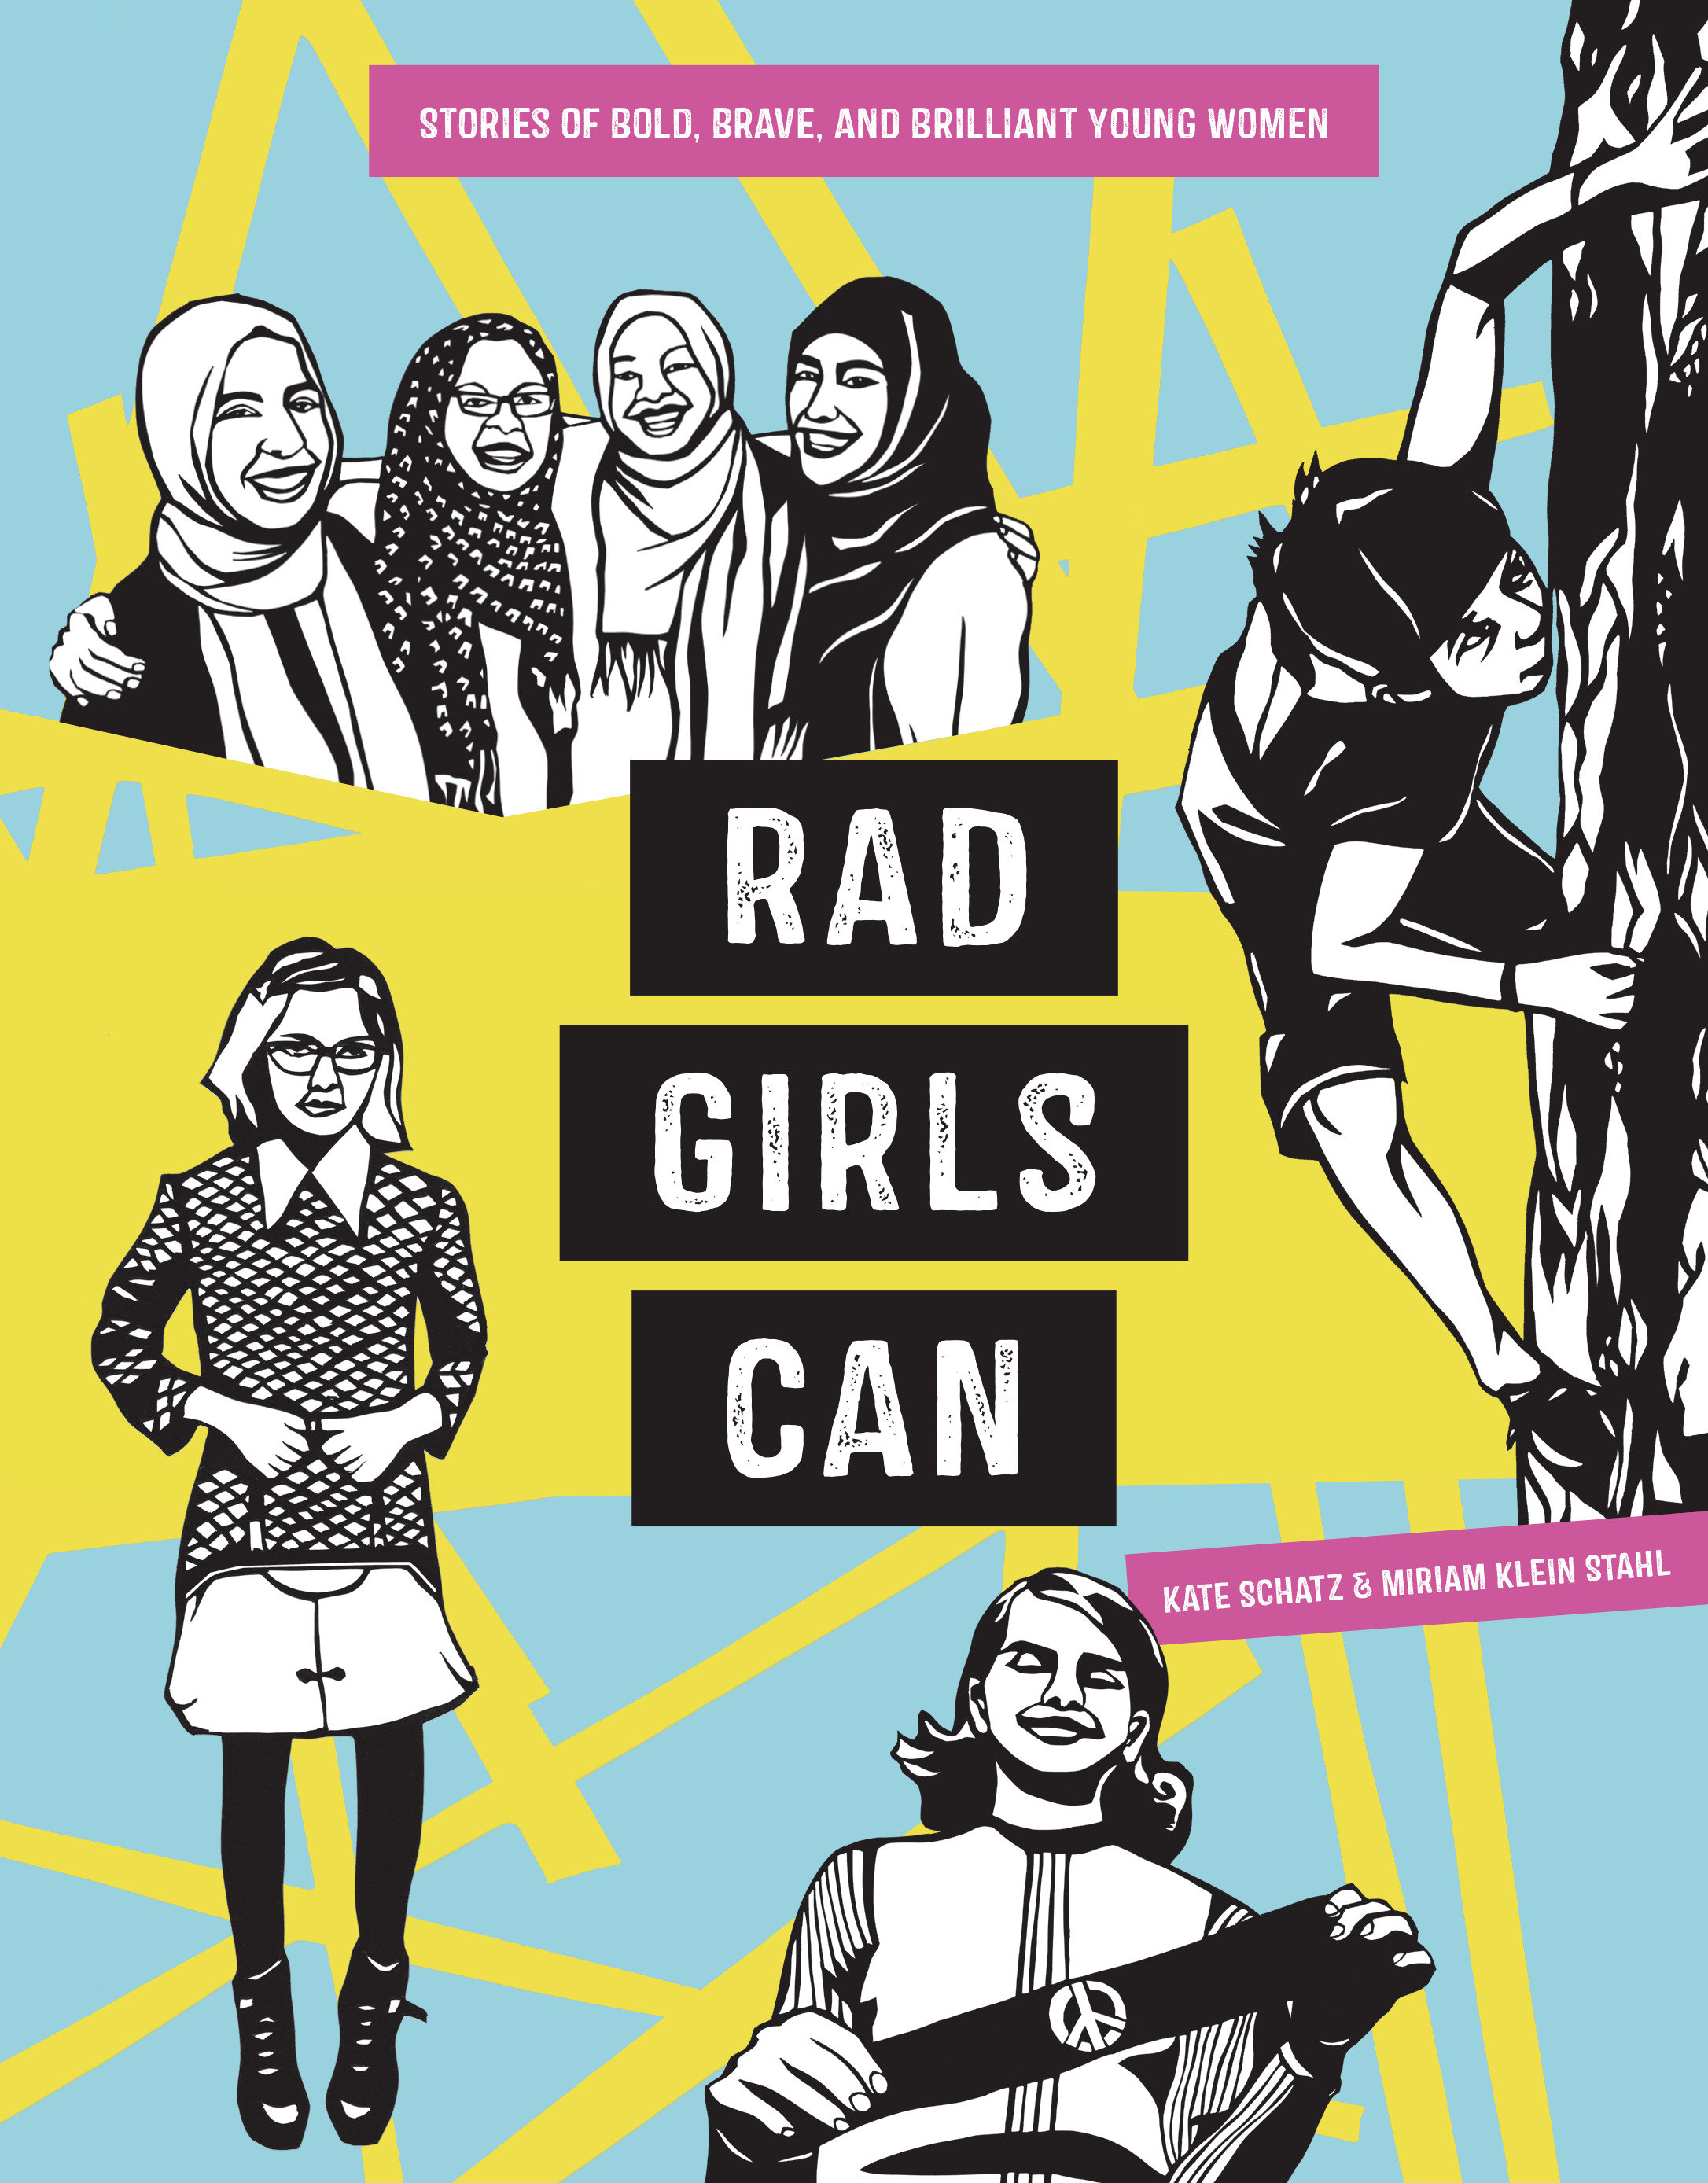 Rad Girls Can Stories of Bold, Brave, and Brilliant Young Women